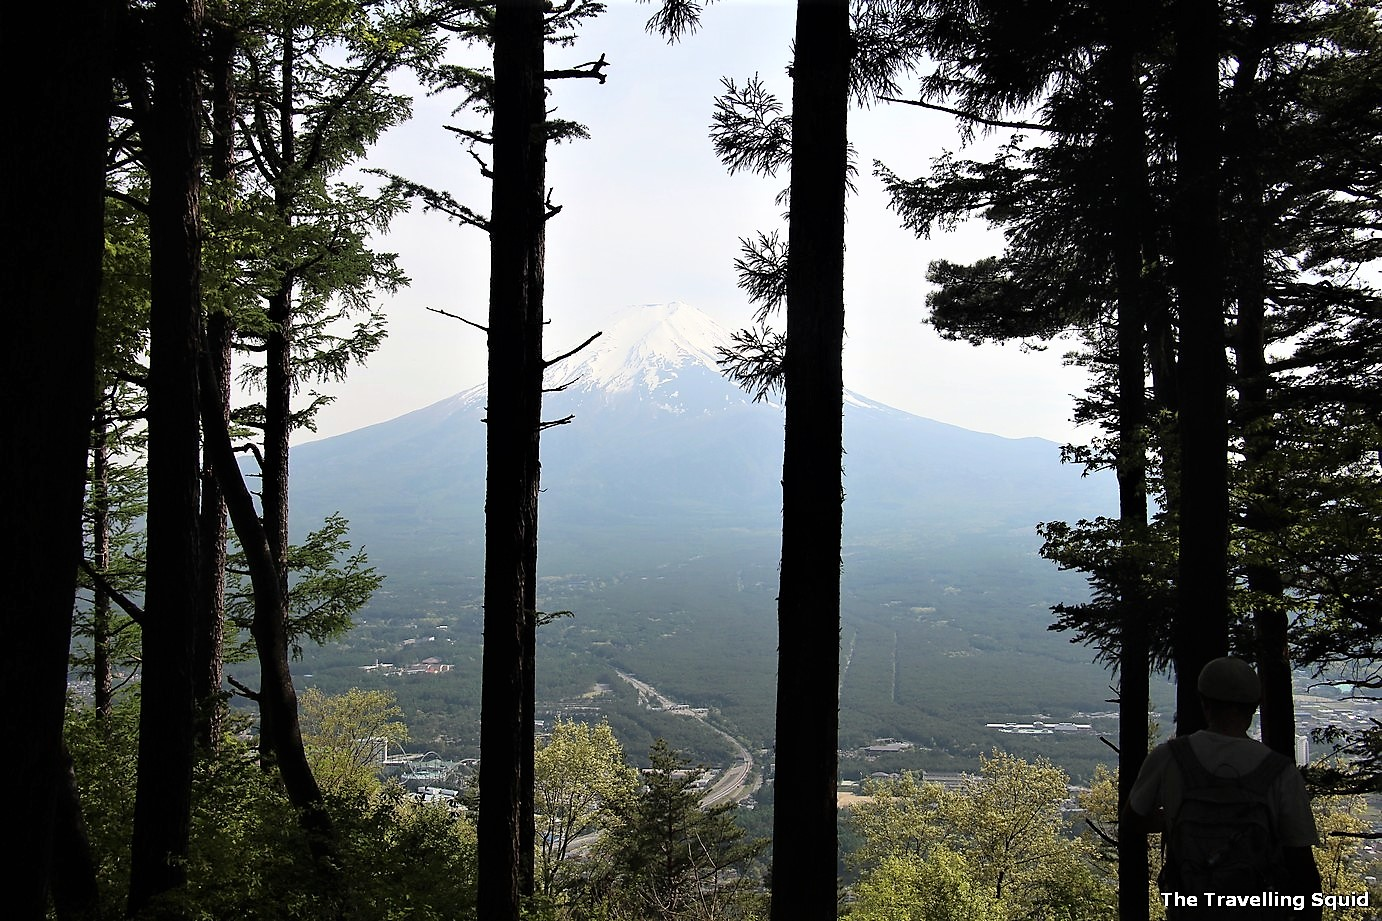 hike to the summit of Mount Tenjo to view Mount Fuji